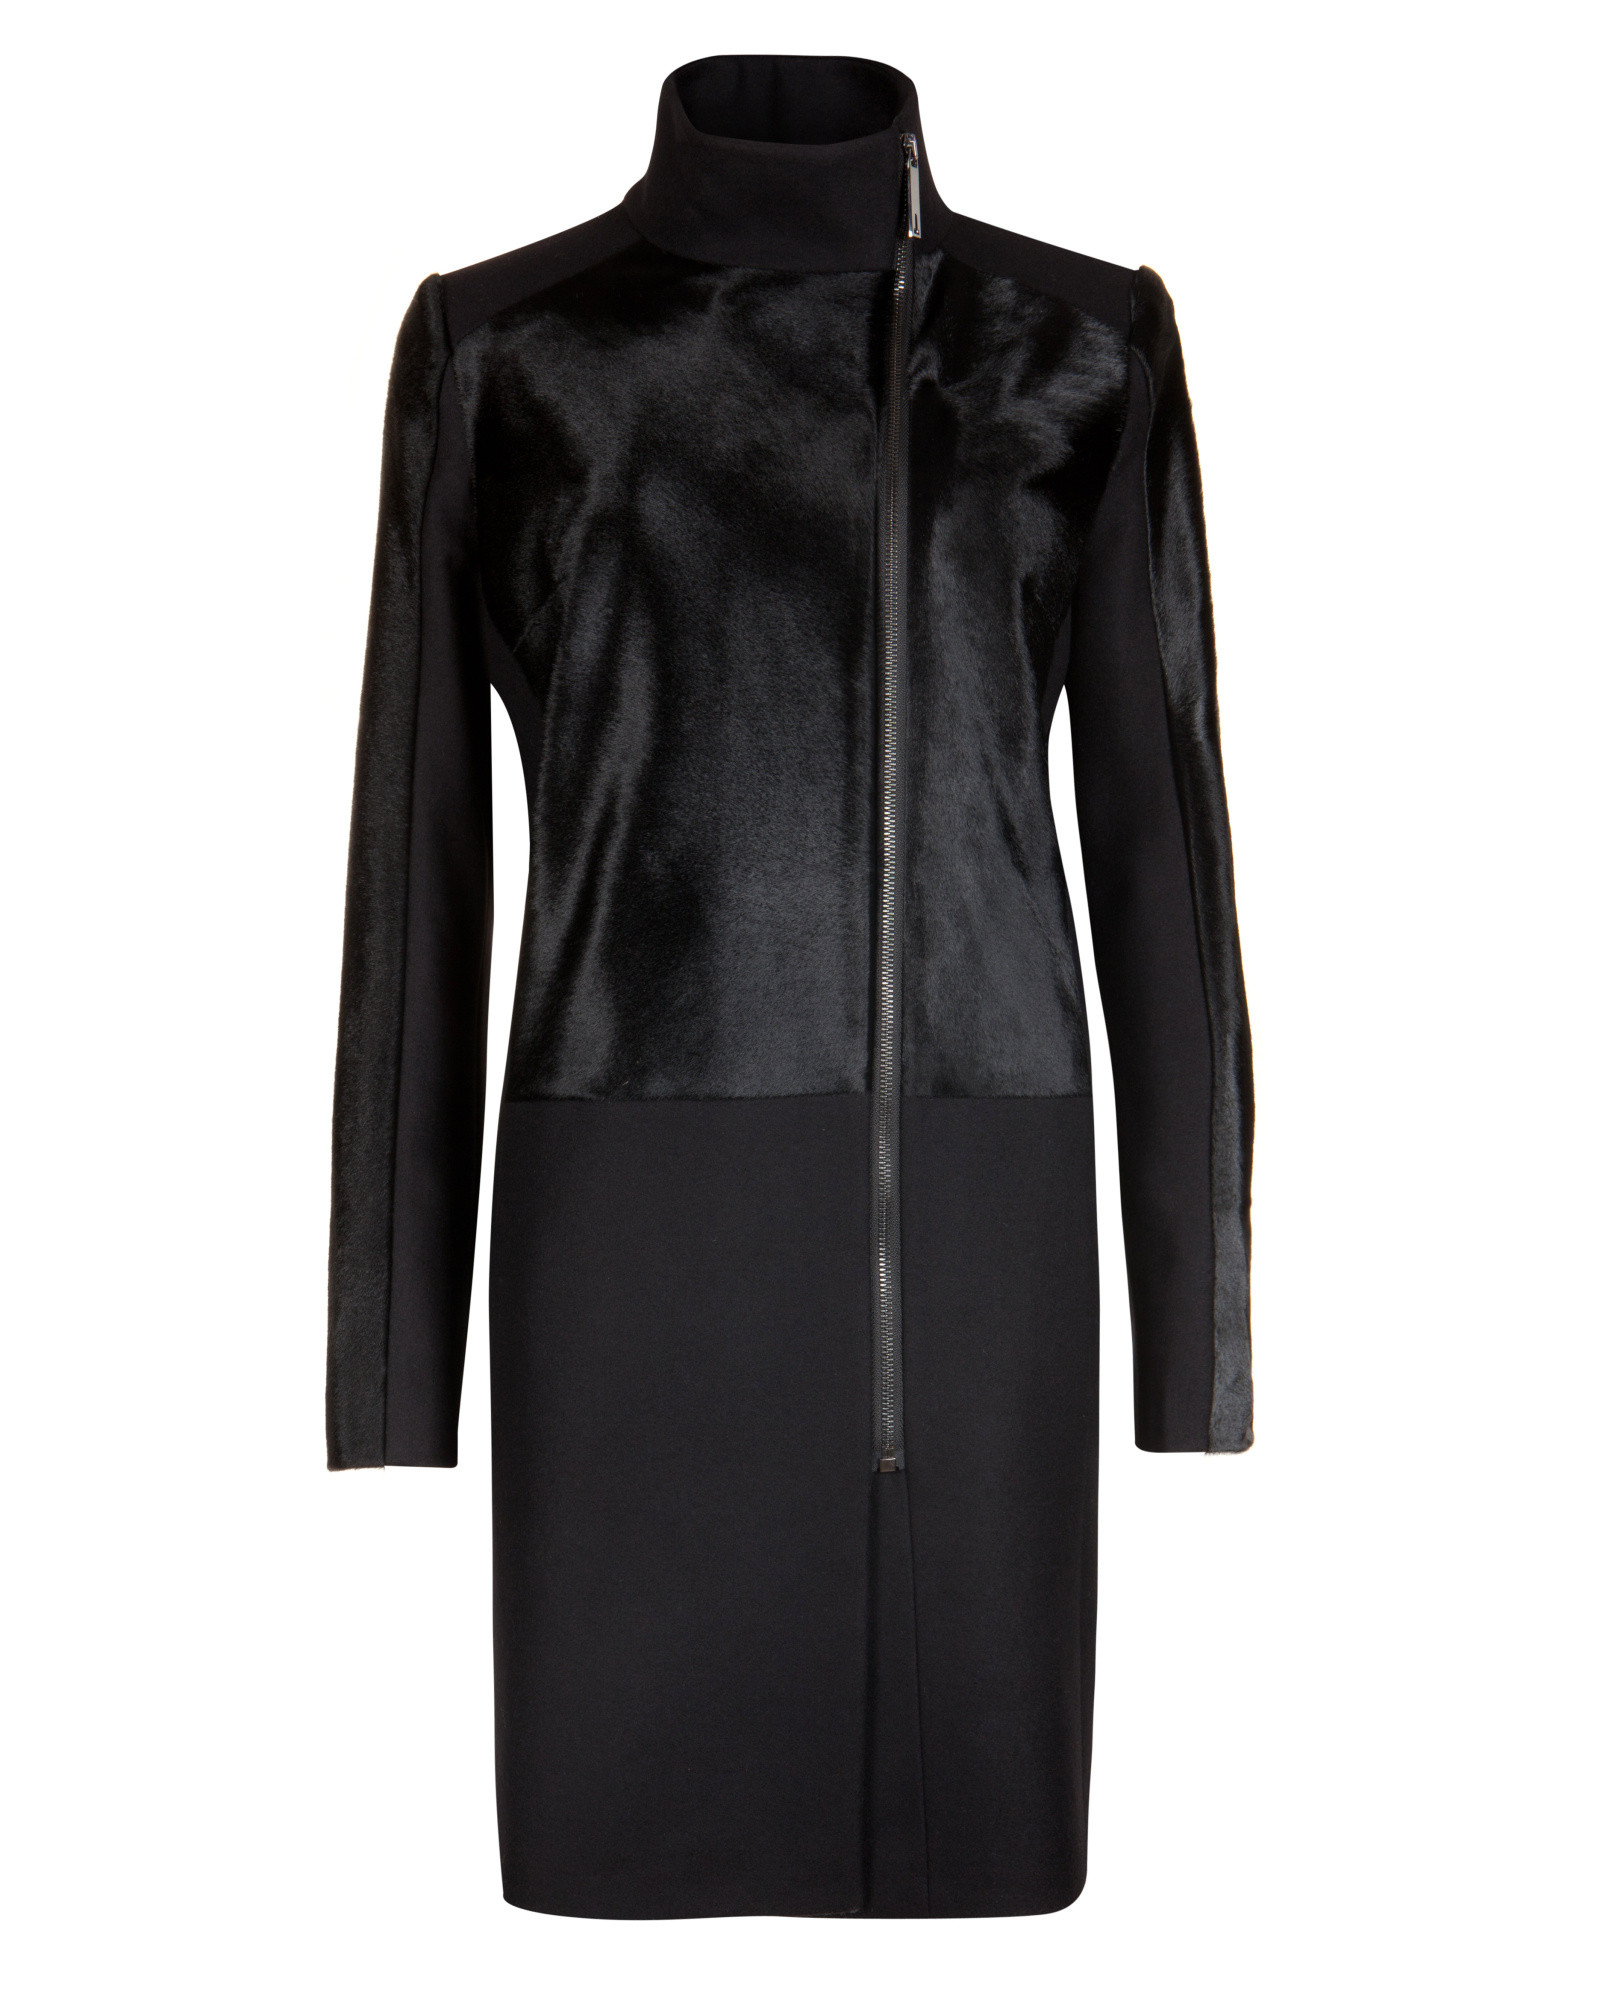 d71f8f09b Lyst - Ted Baker Pony Skin Effect Leather Coat in Black